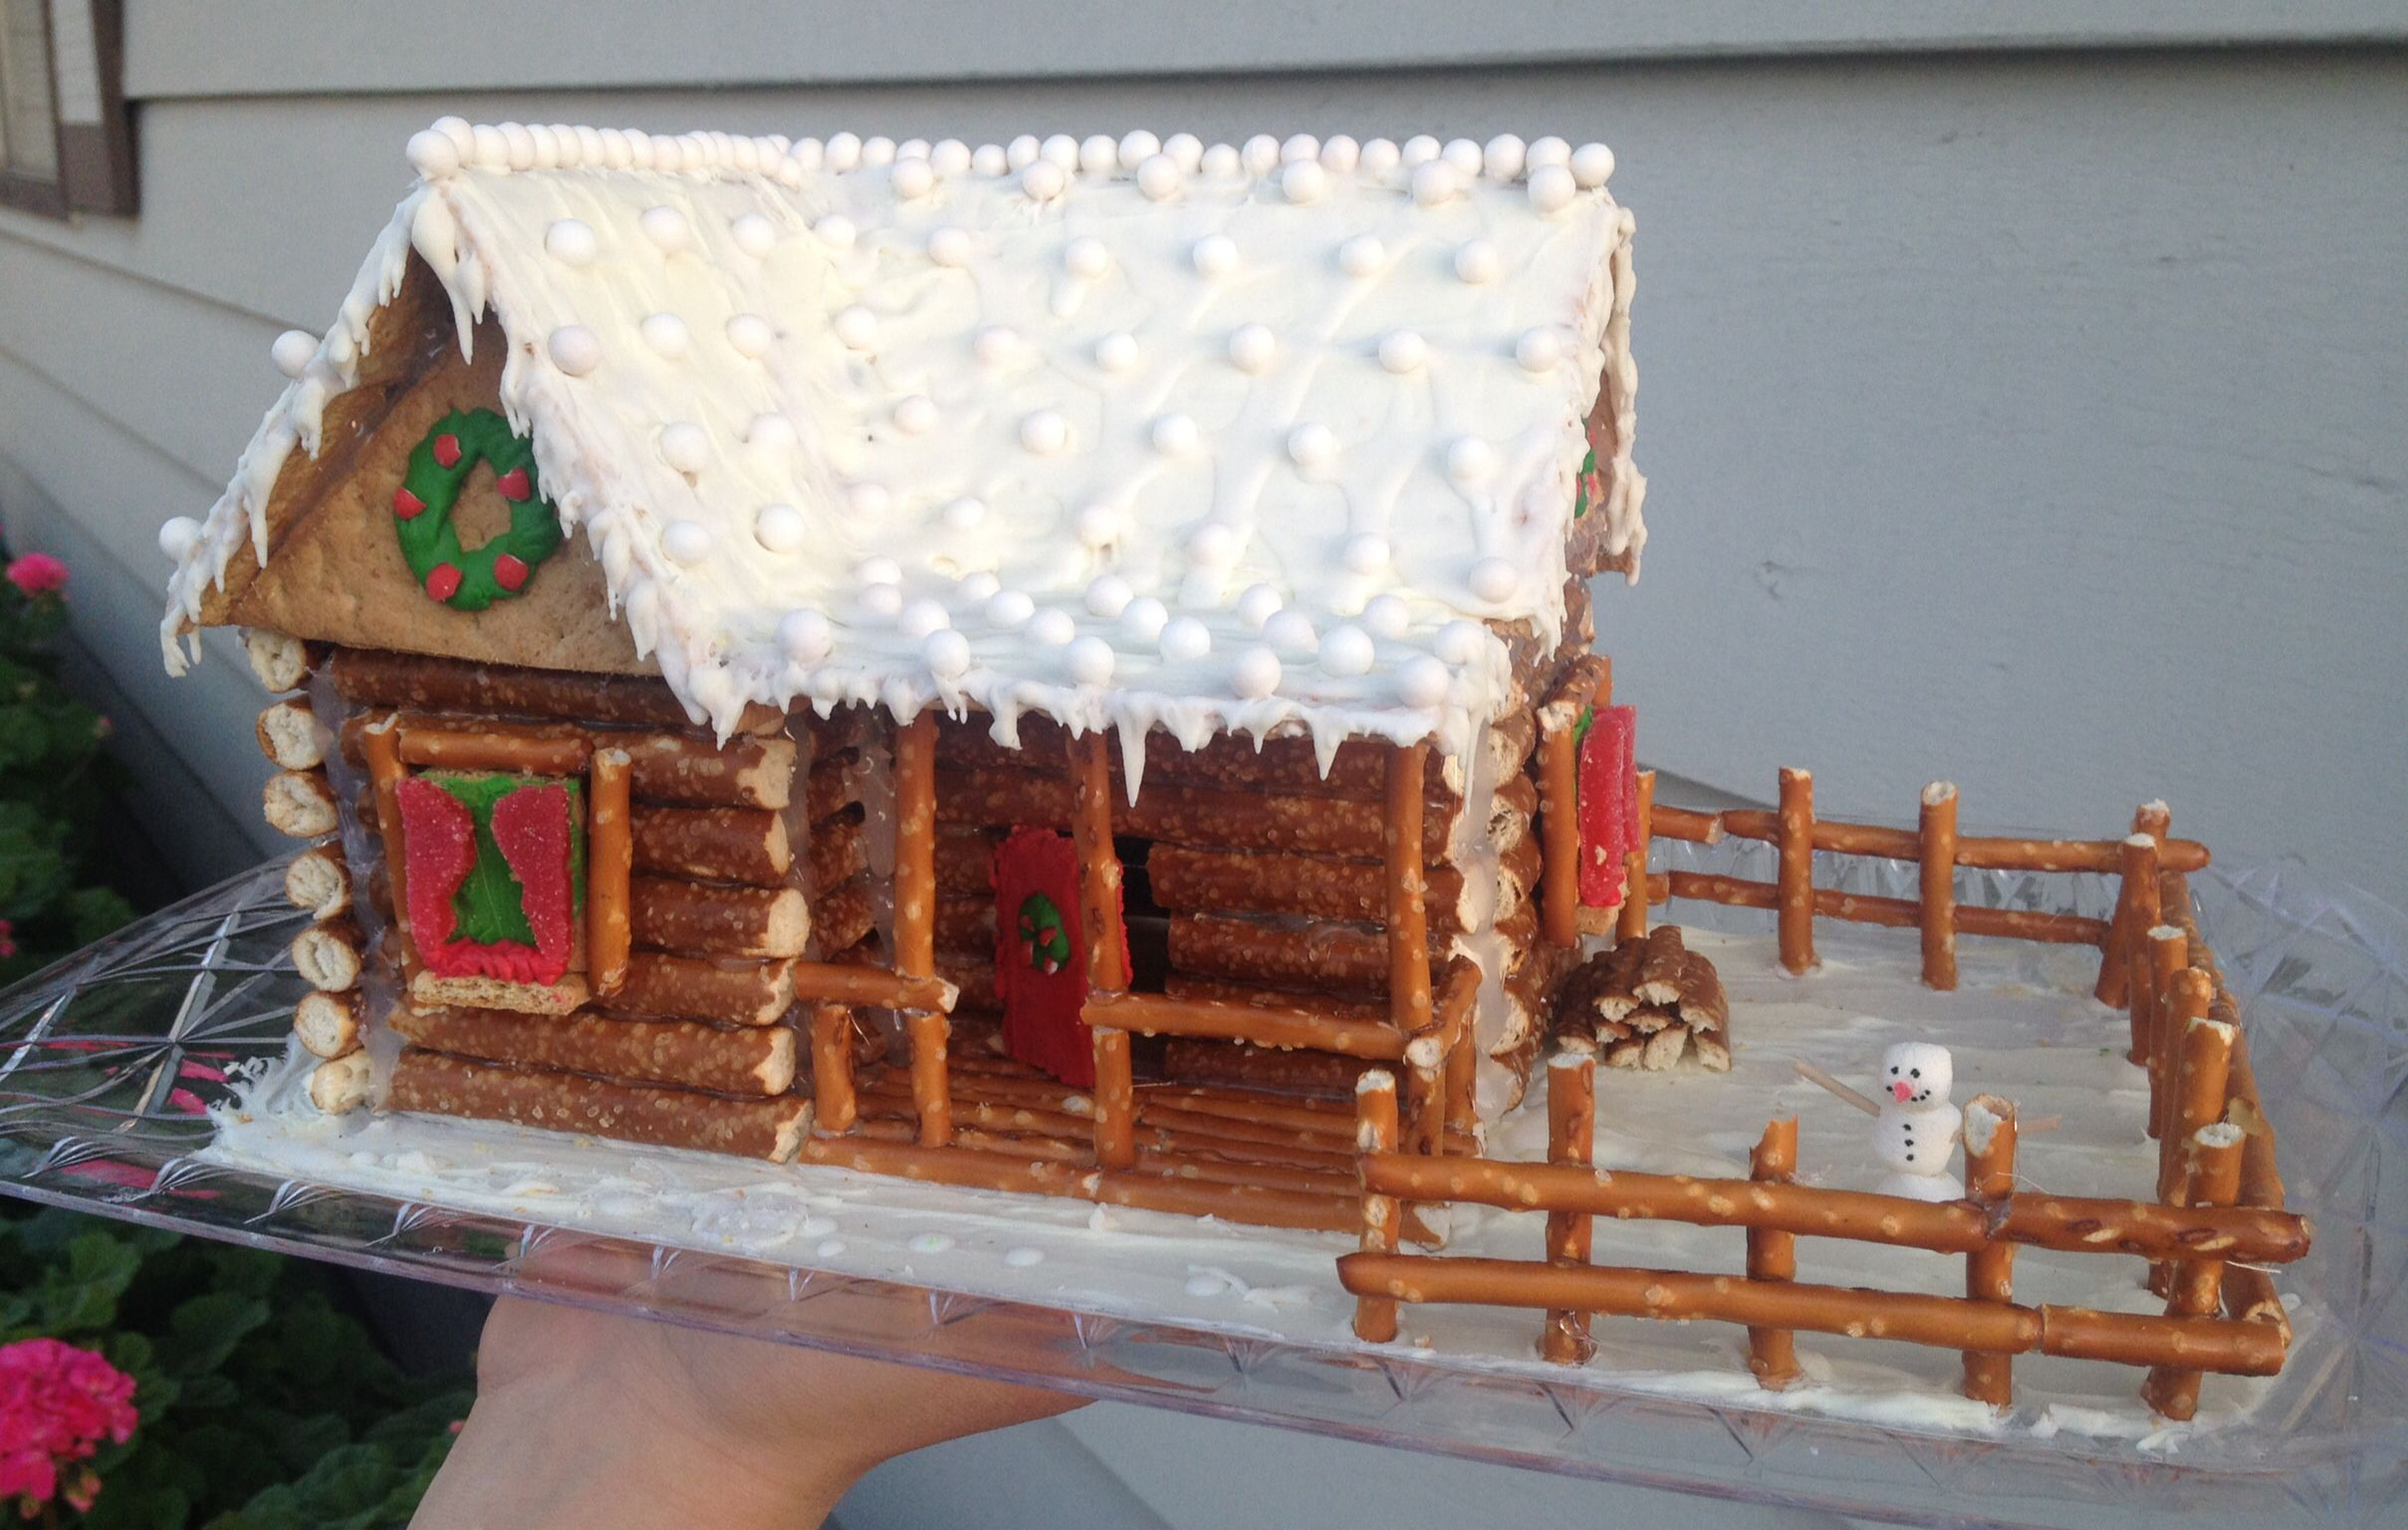 Log Cabin Gingerbread House Complete With Rustic Fence